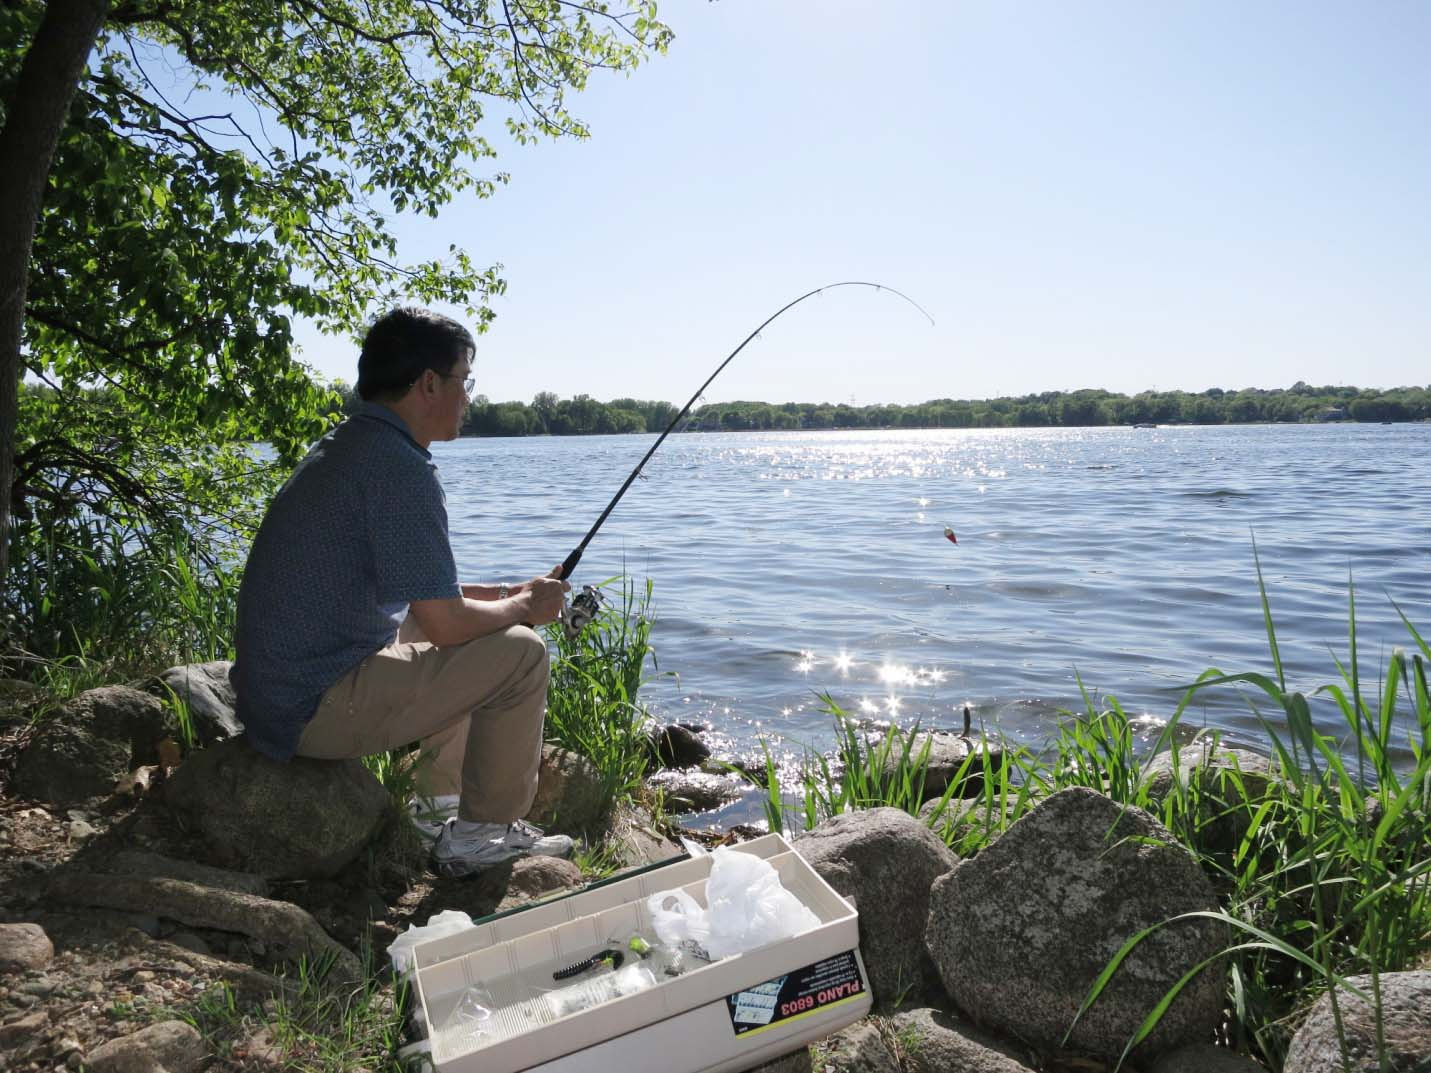 Fisher is waiting for black carps patiently